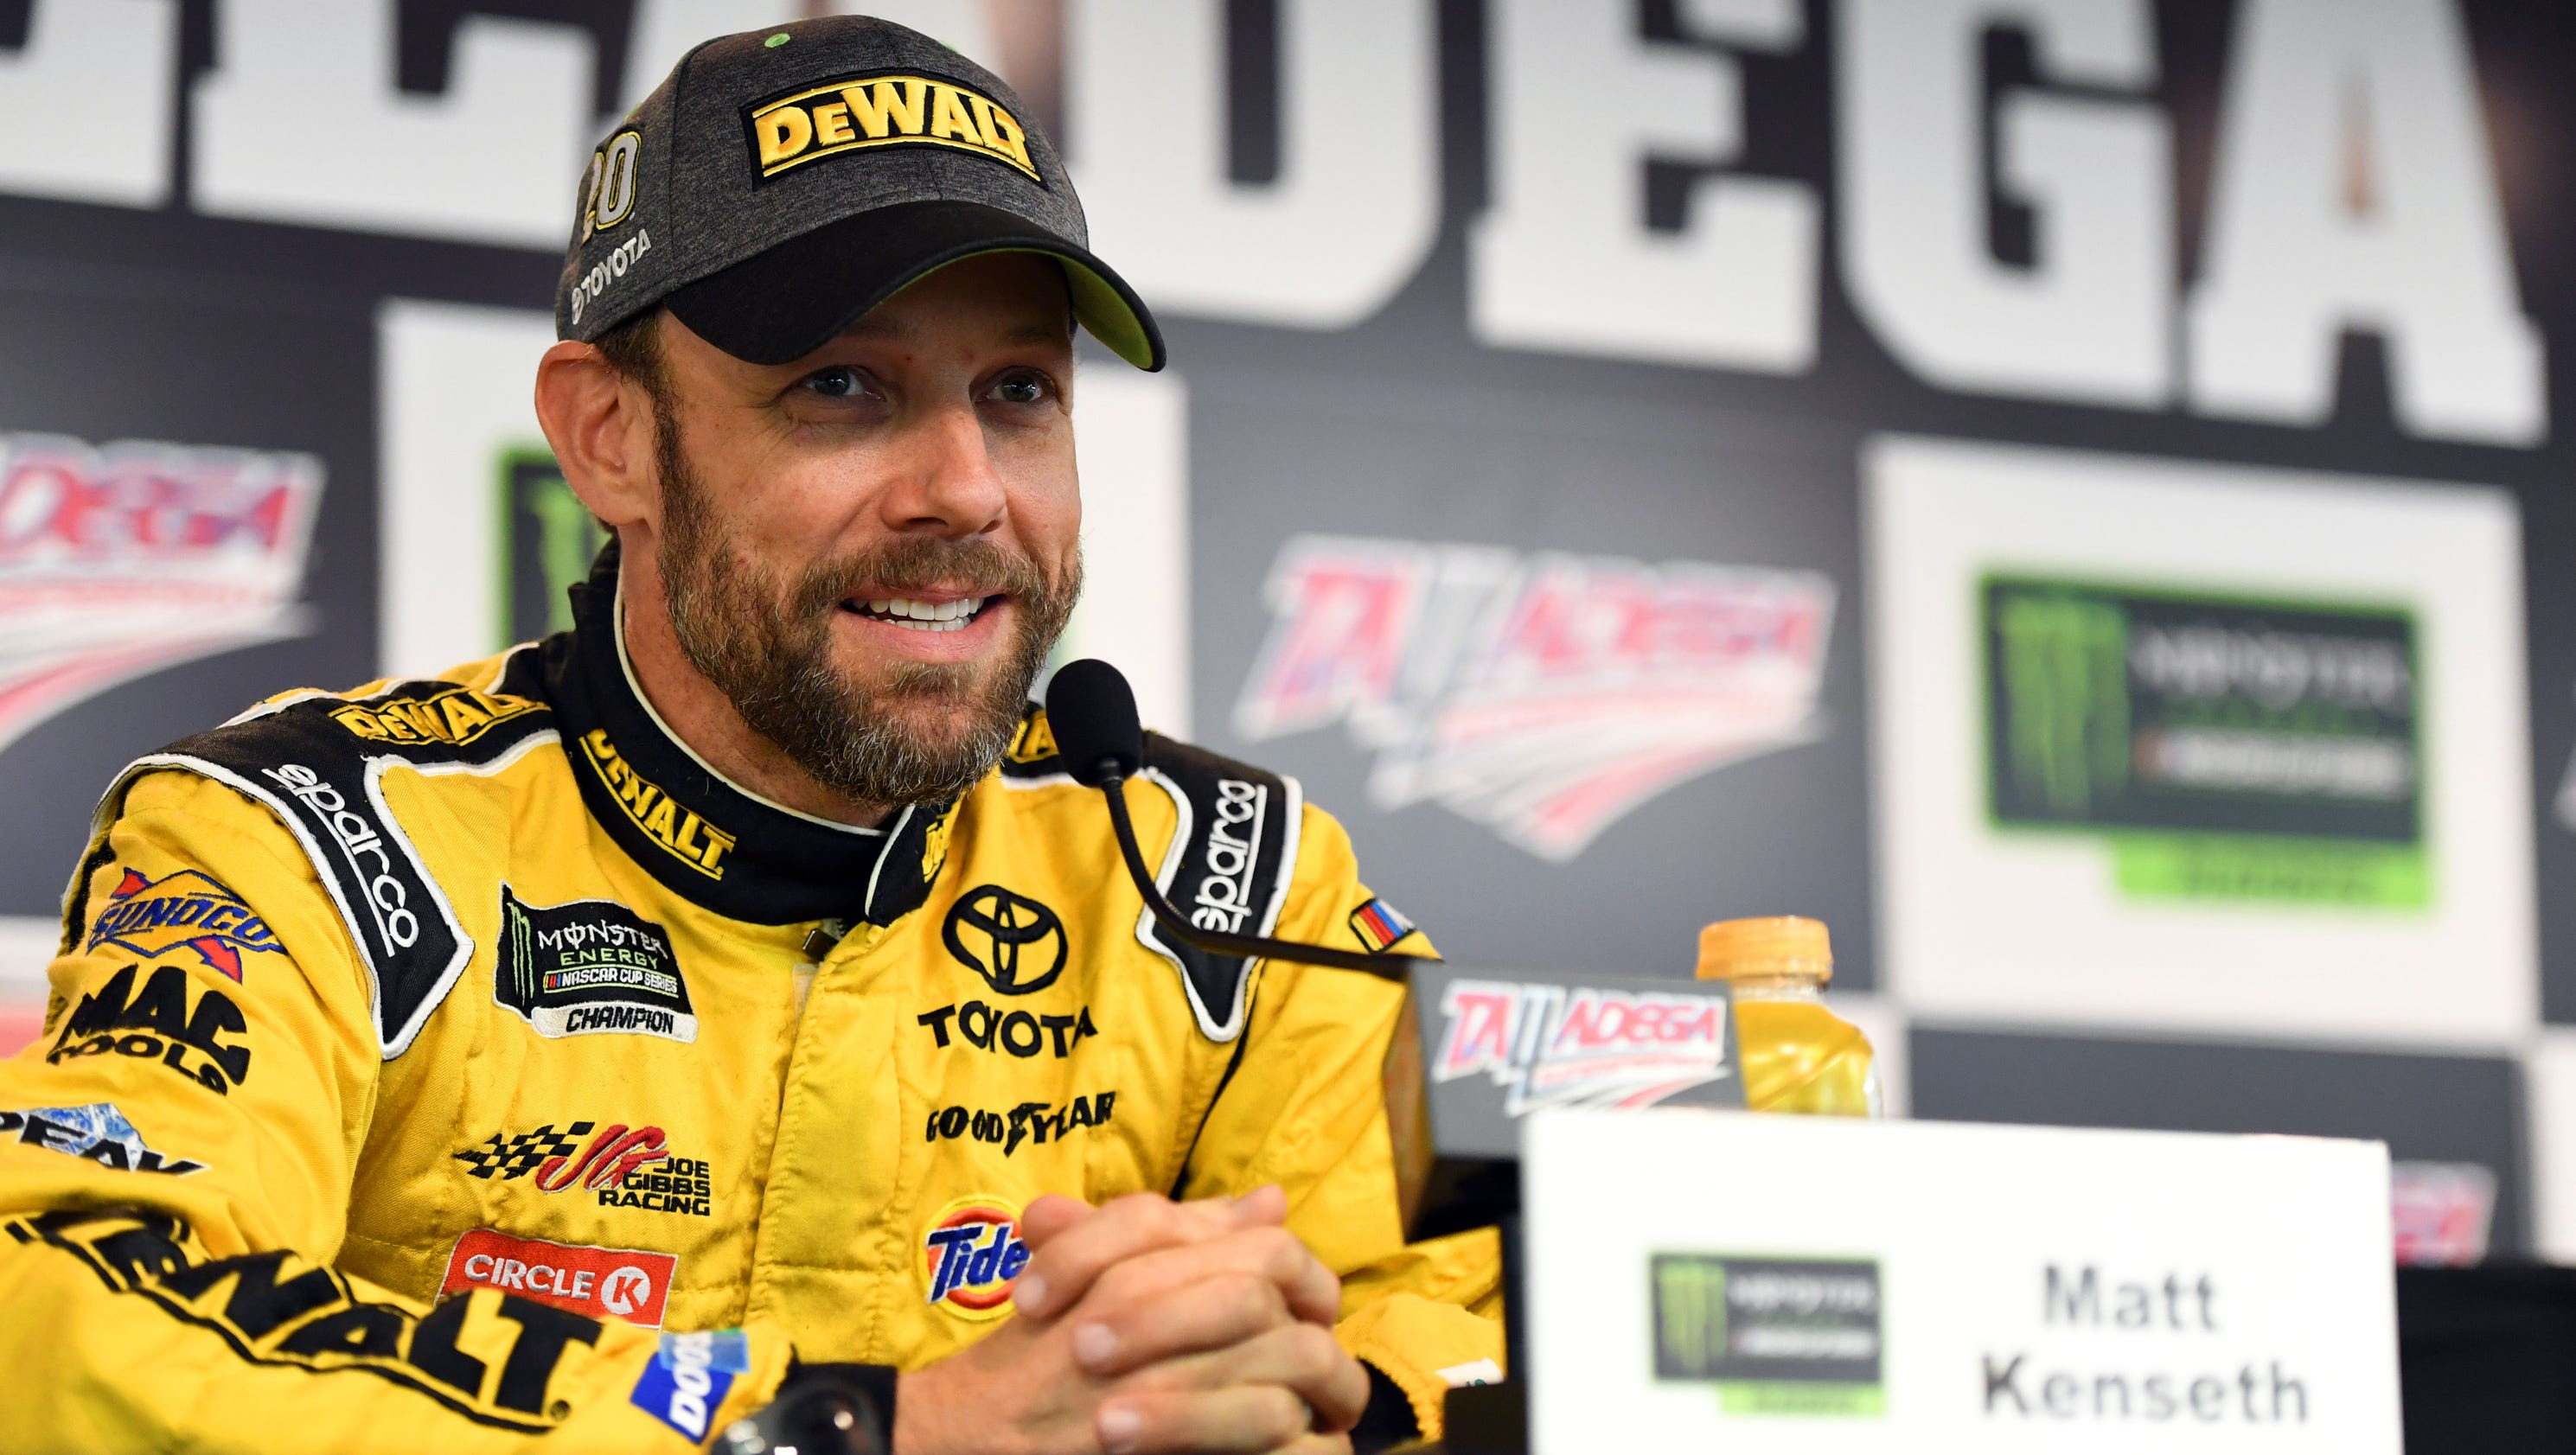 Matt Kenseth redirects talk of his NASCAR future with humor